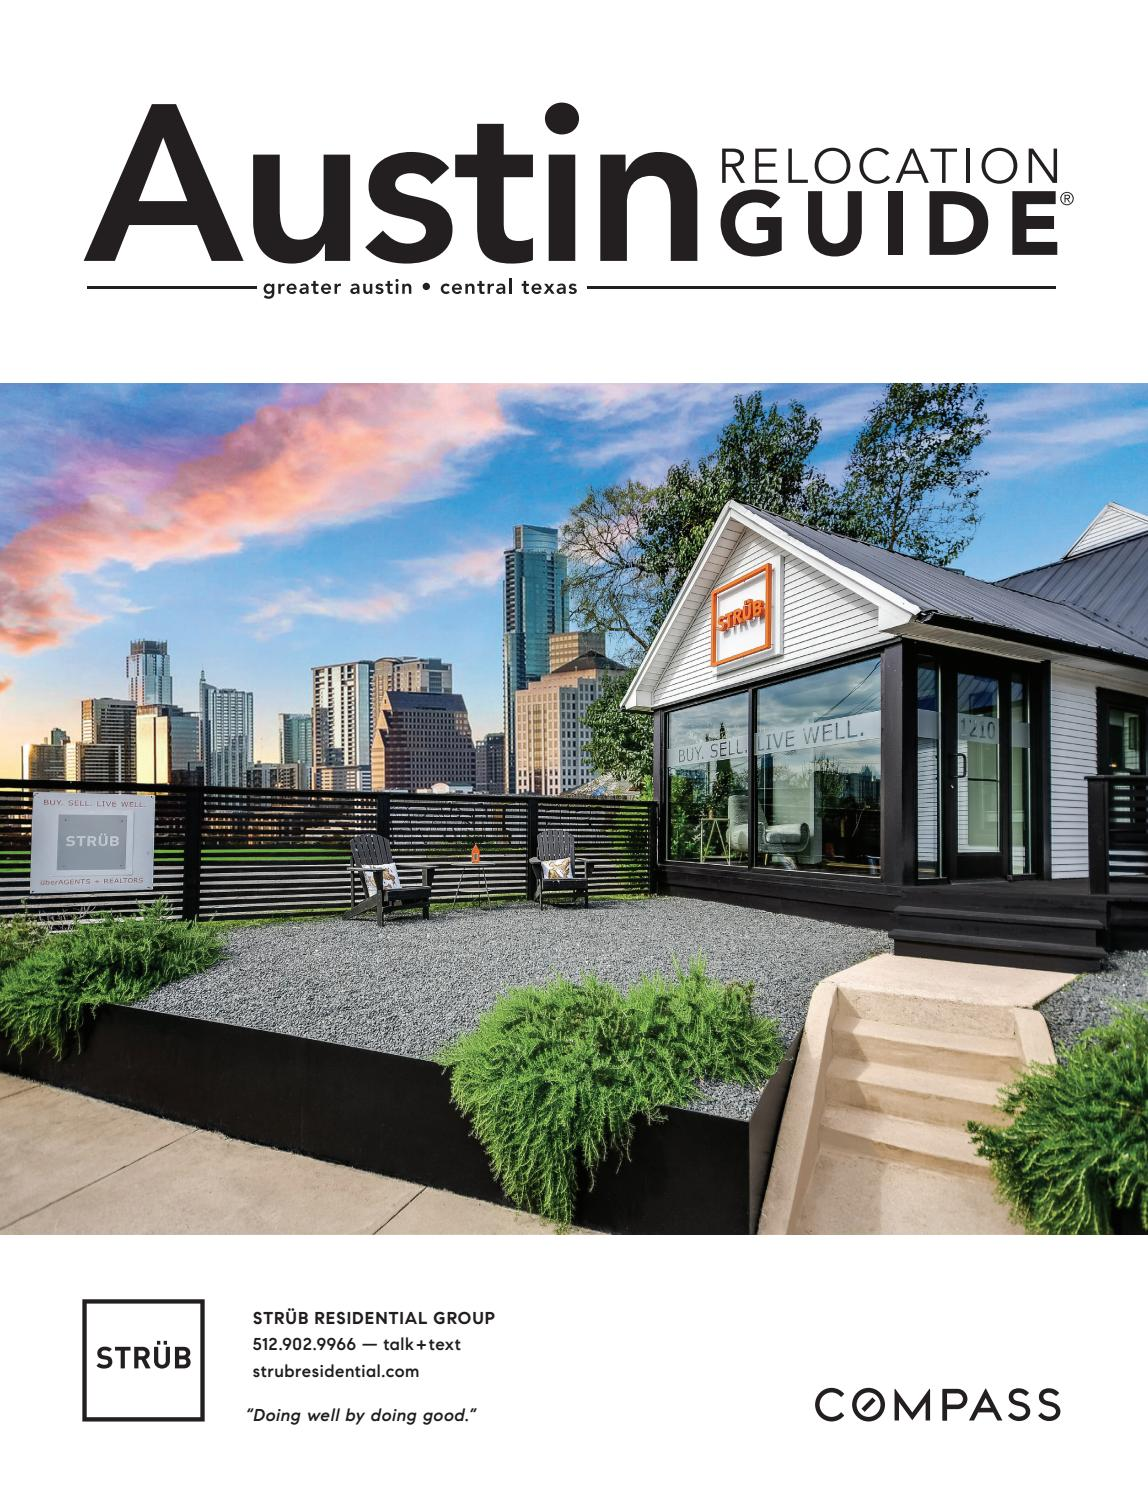 floor n decor austin.htm austin relocation guide 2019 issue 2 str  b residential group  austin relocation guide 2019 issue 2